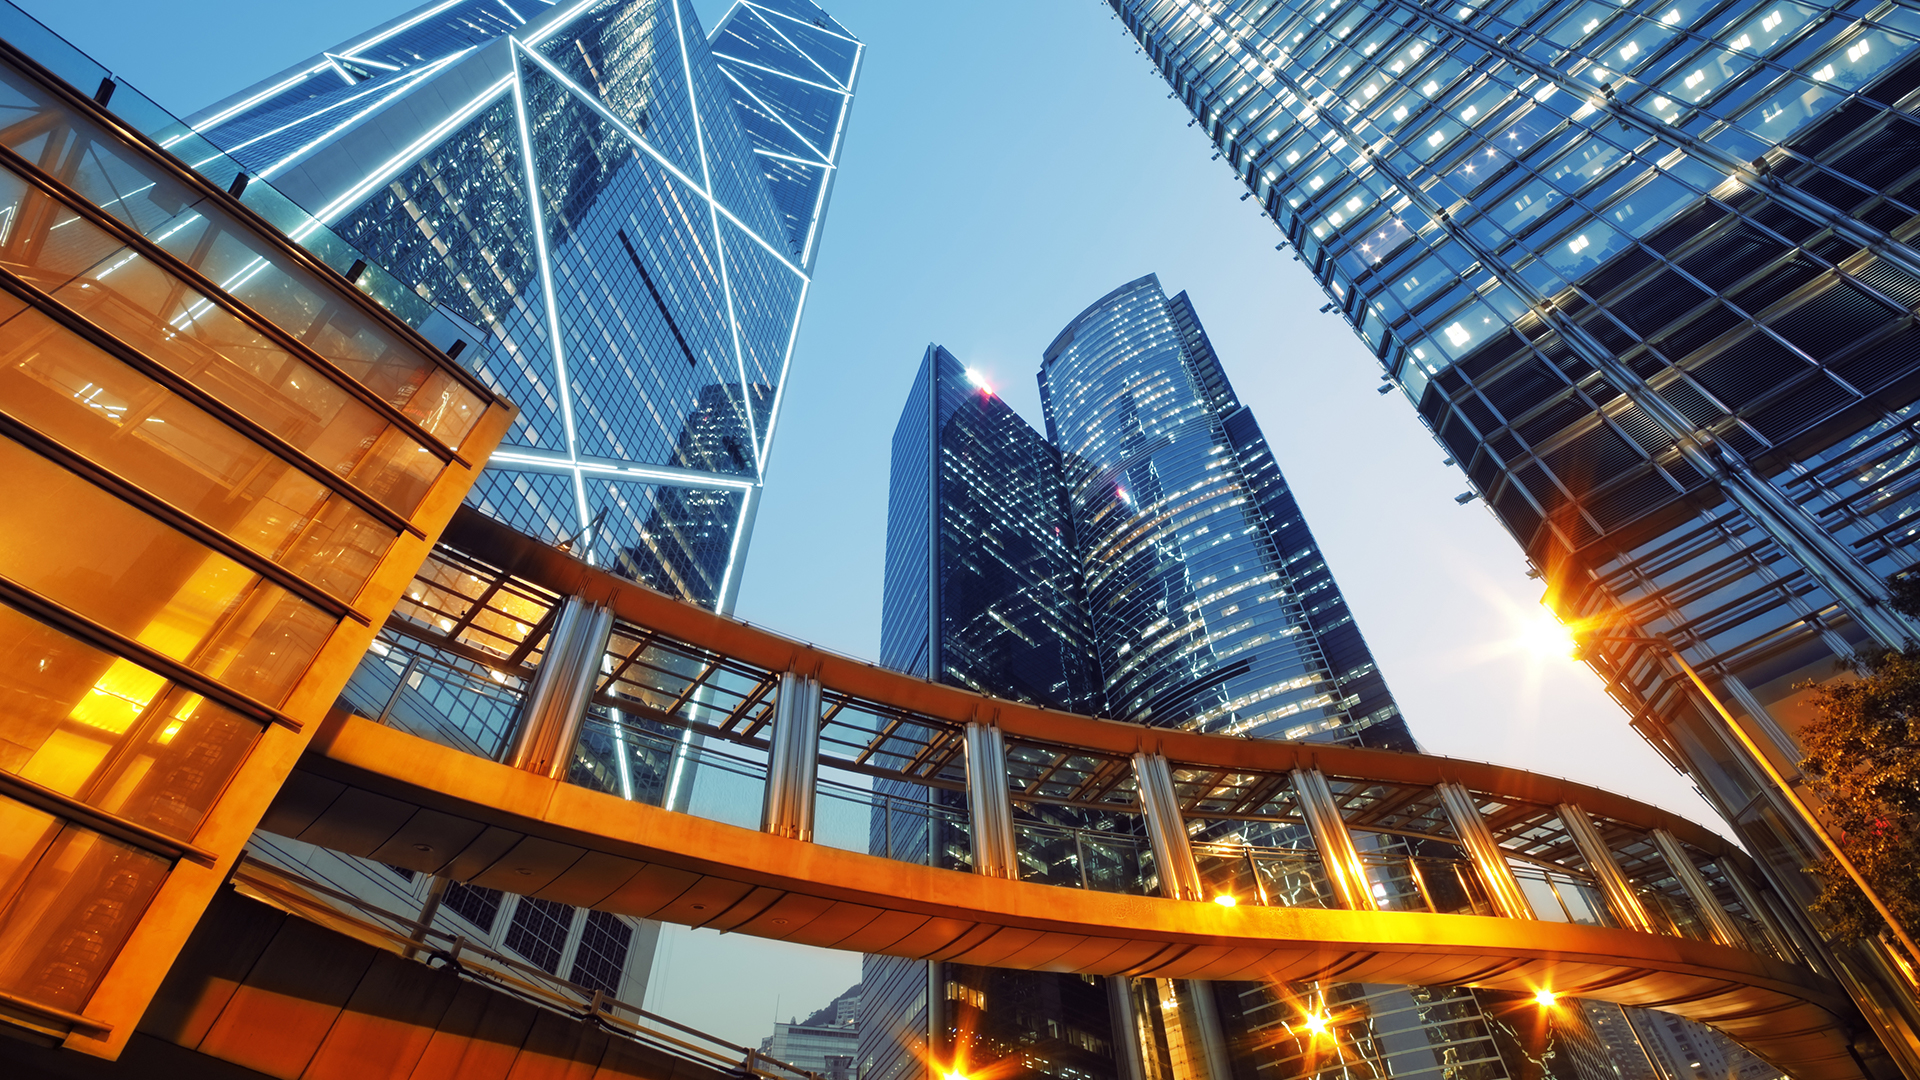 Cross-border insolvency in Hong Kong: Common law limitations and how the Model Law could drive foreign investment and economic growth